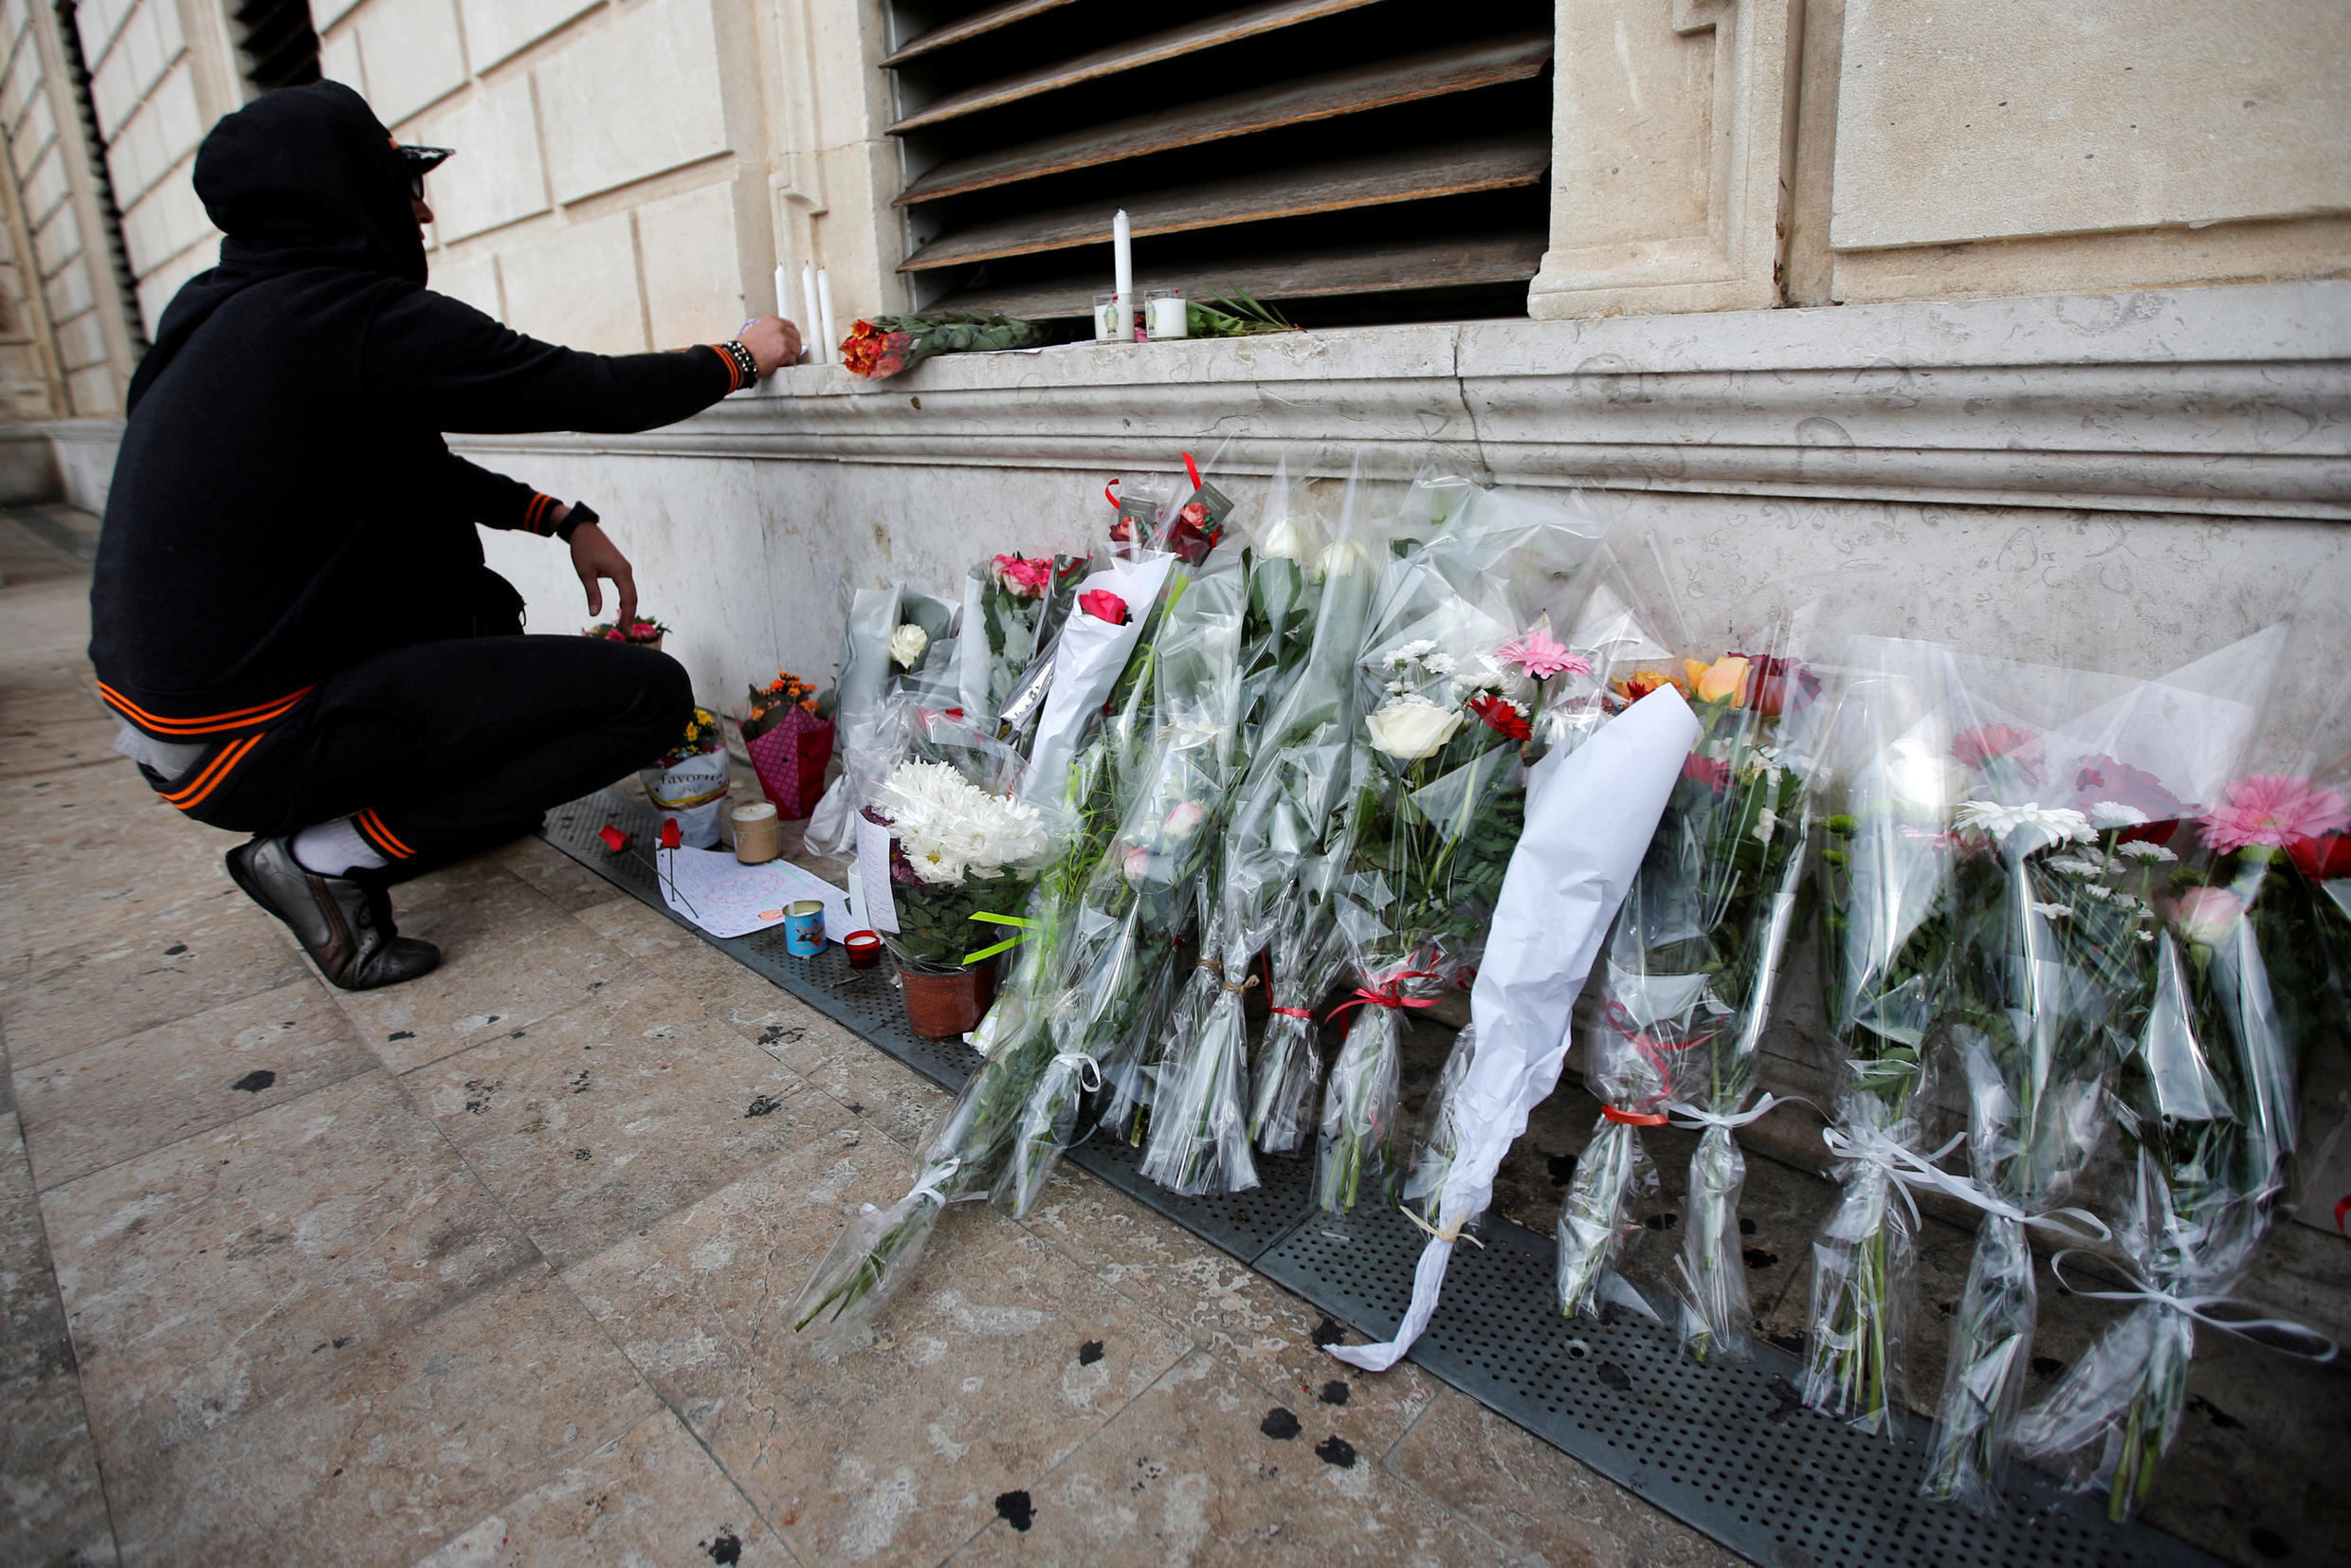 A man installs candles in tribute to the two women who were stabbed to death by a knife attack at the main train station in Marseille A man installs candles in tribute to the two women who were stabbed to death Sunday at the main train station